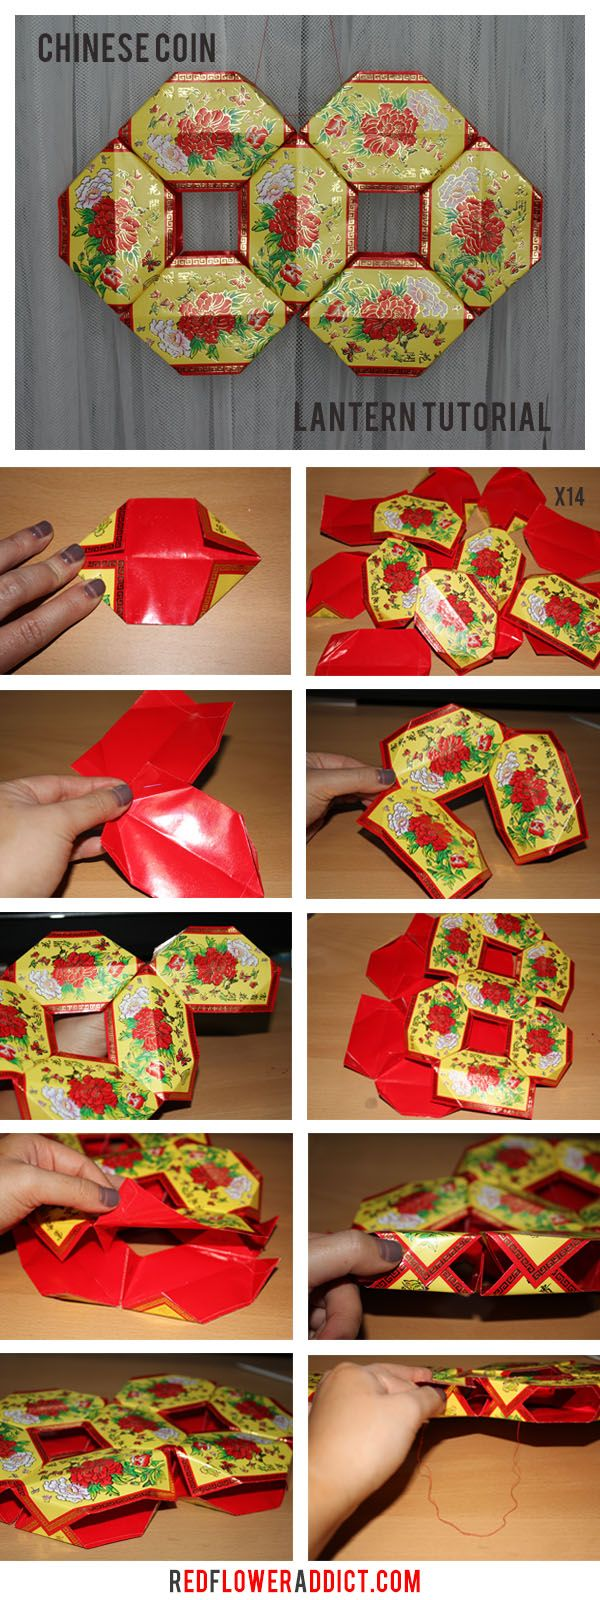 274 best images about cny red envelopes lanterns ang for Ang pow koi fish tutorial